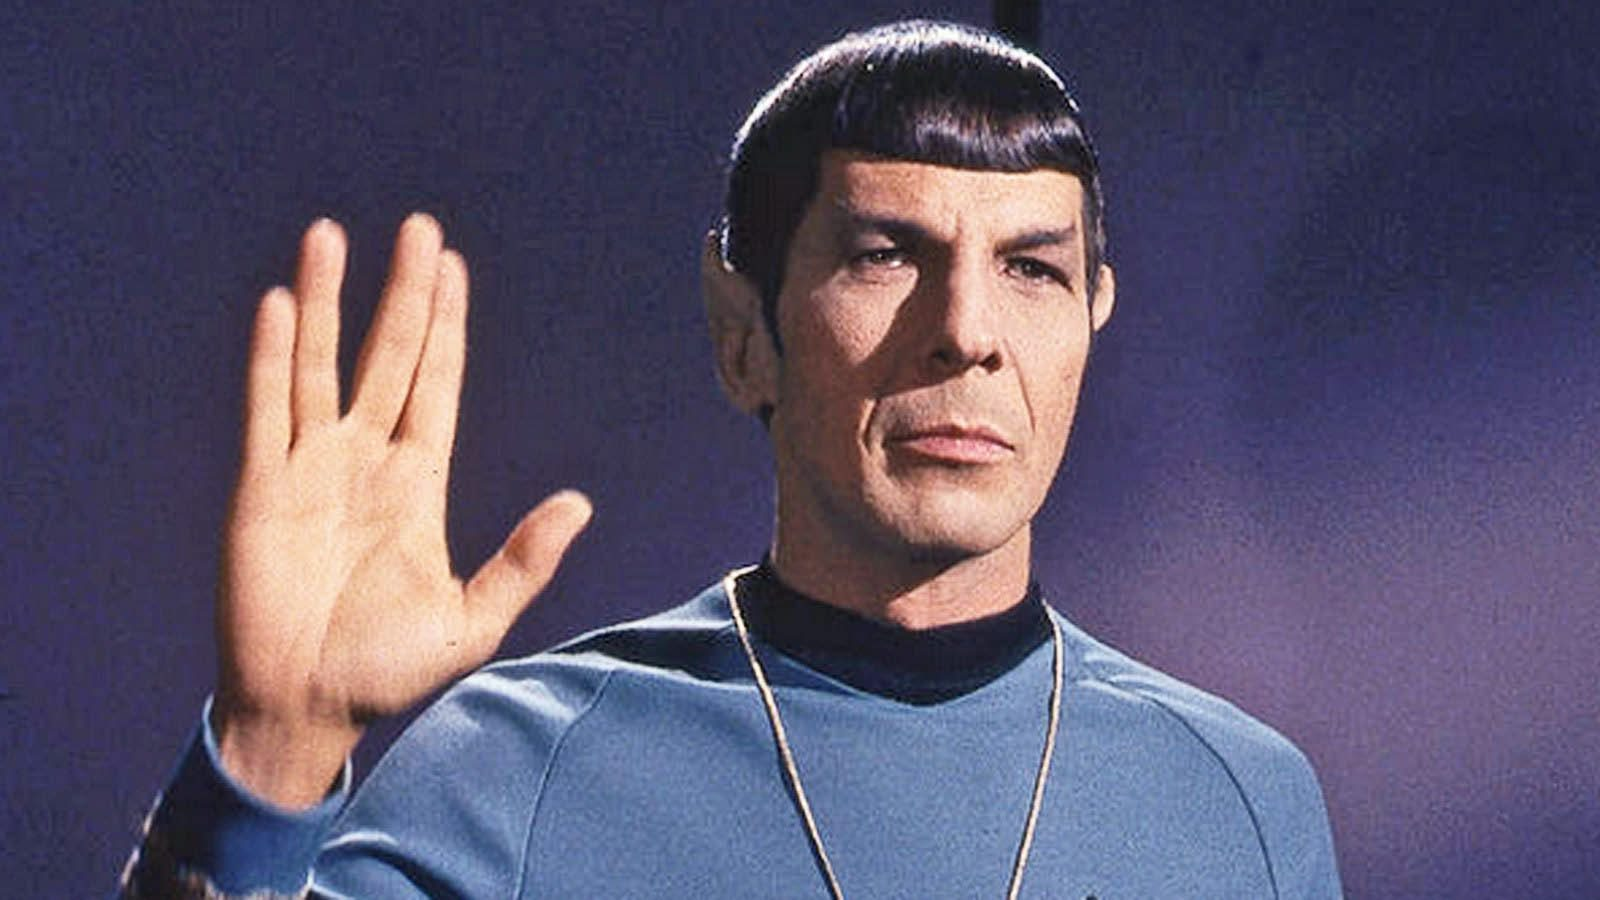 The original 'Star Trek' featuring Leonard Nimoy as Mr. Spock is returning to local TV.